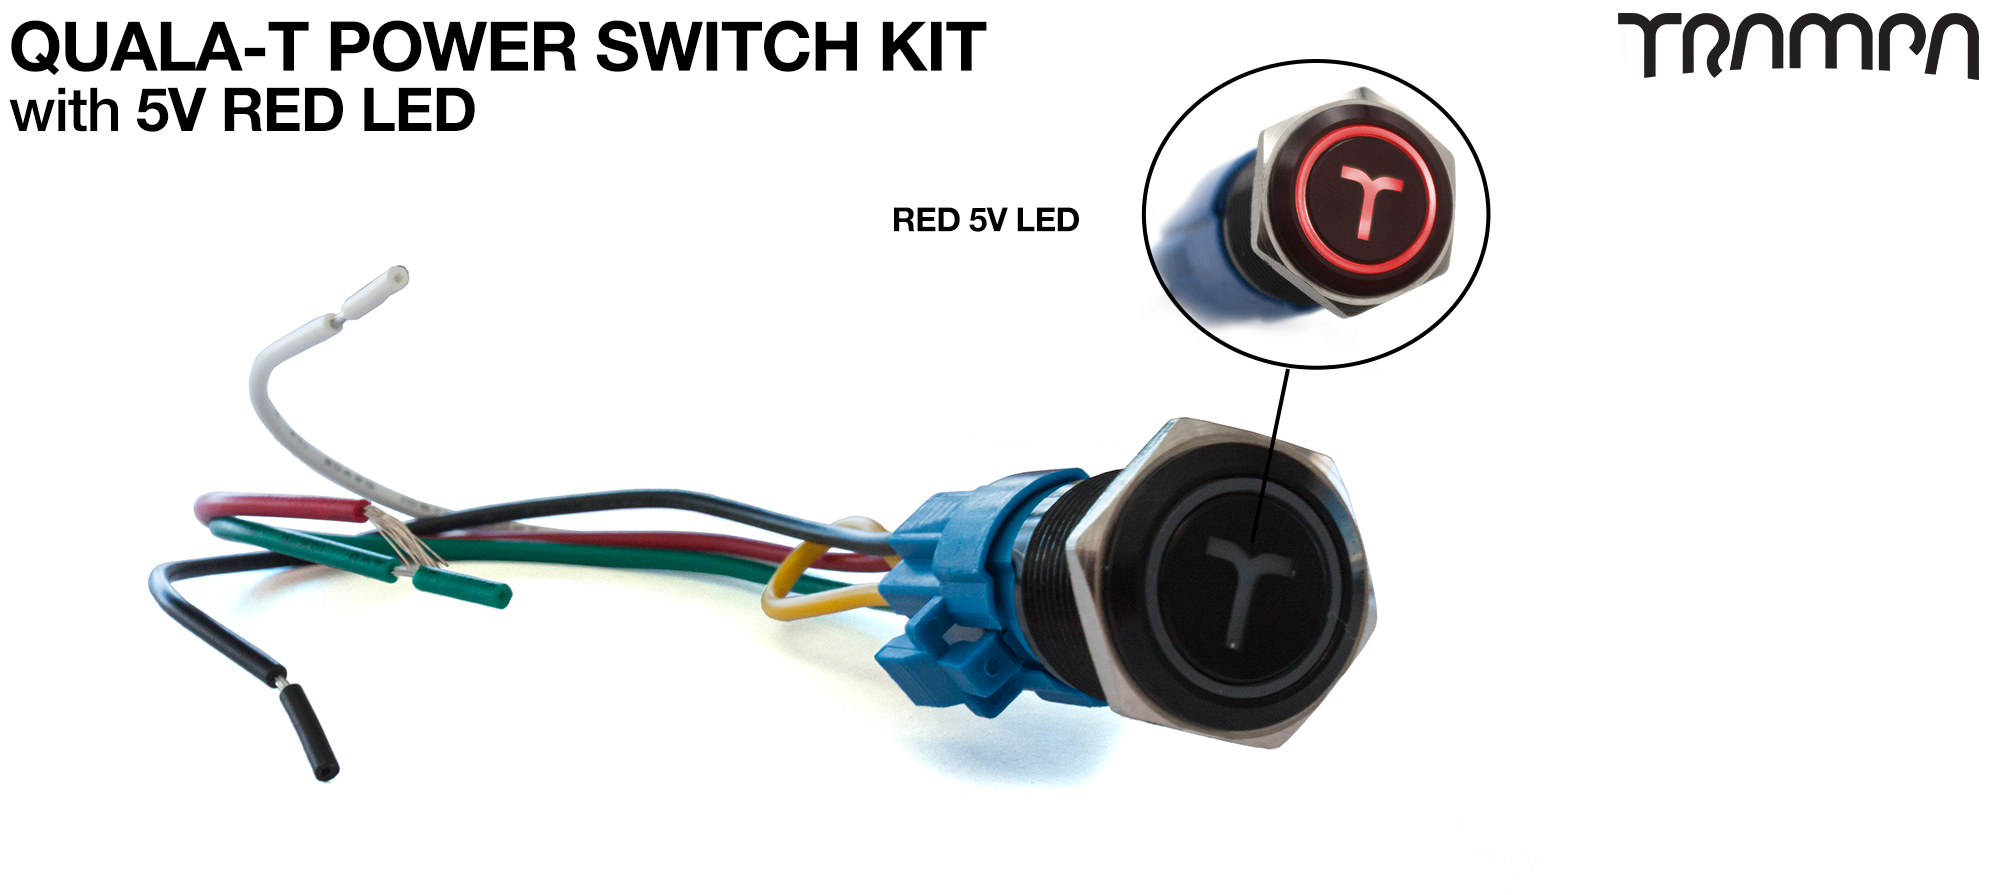 RED LED QUALA-T Power Switch Kit with 16mm Fixing Nut & Cable Harness